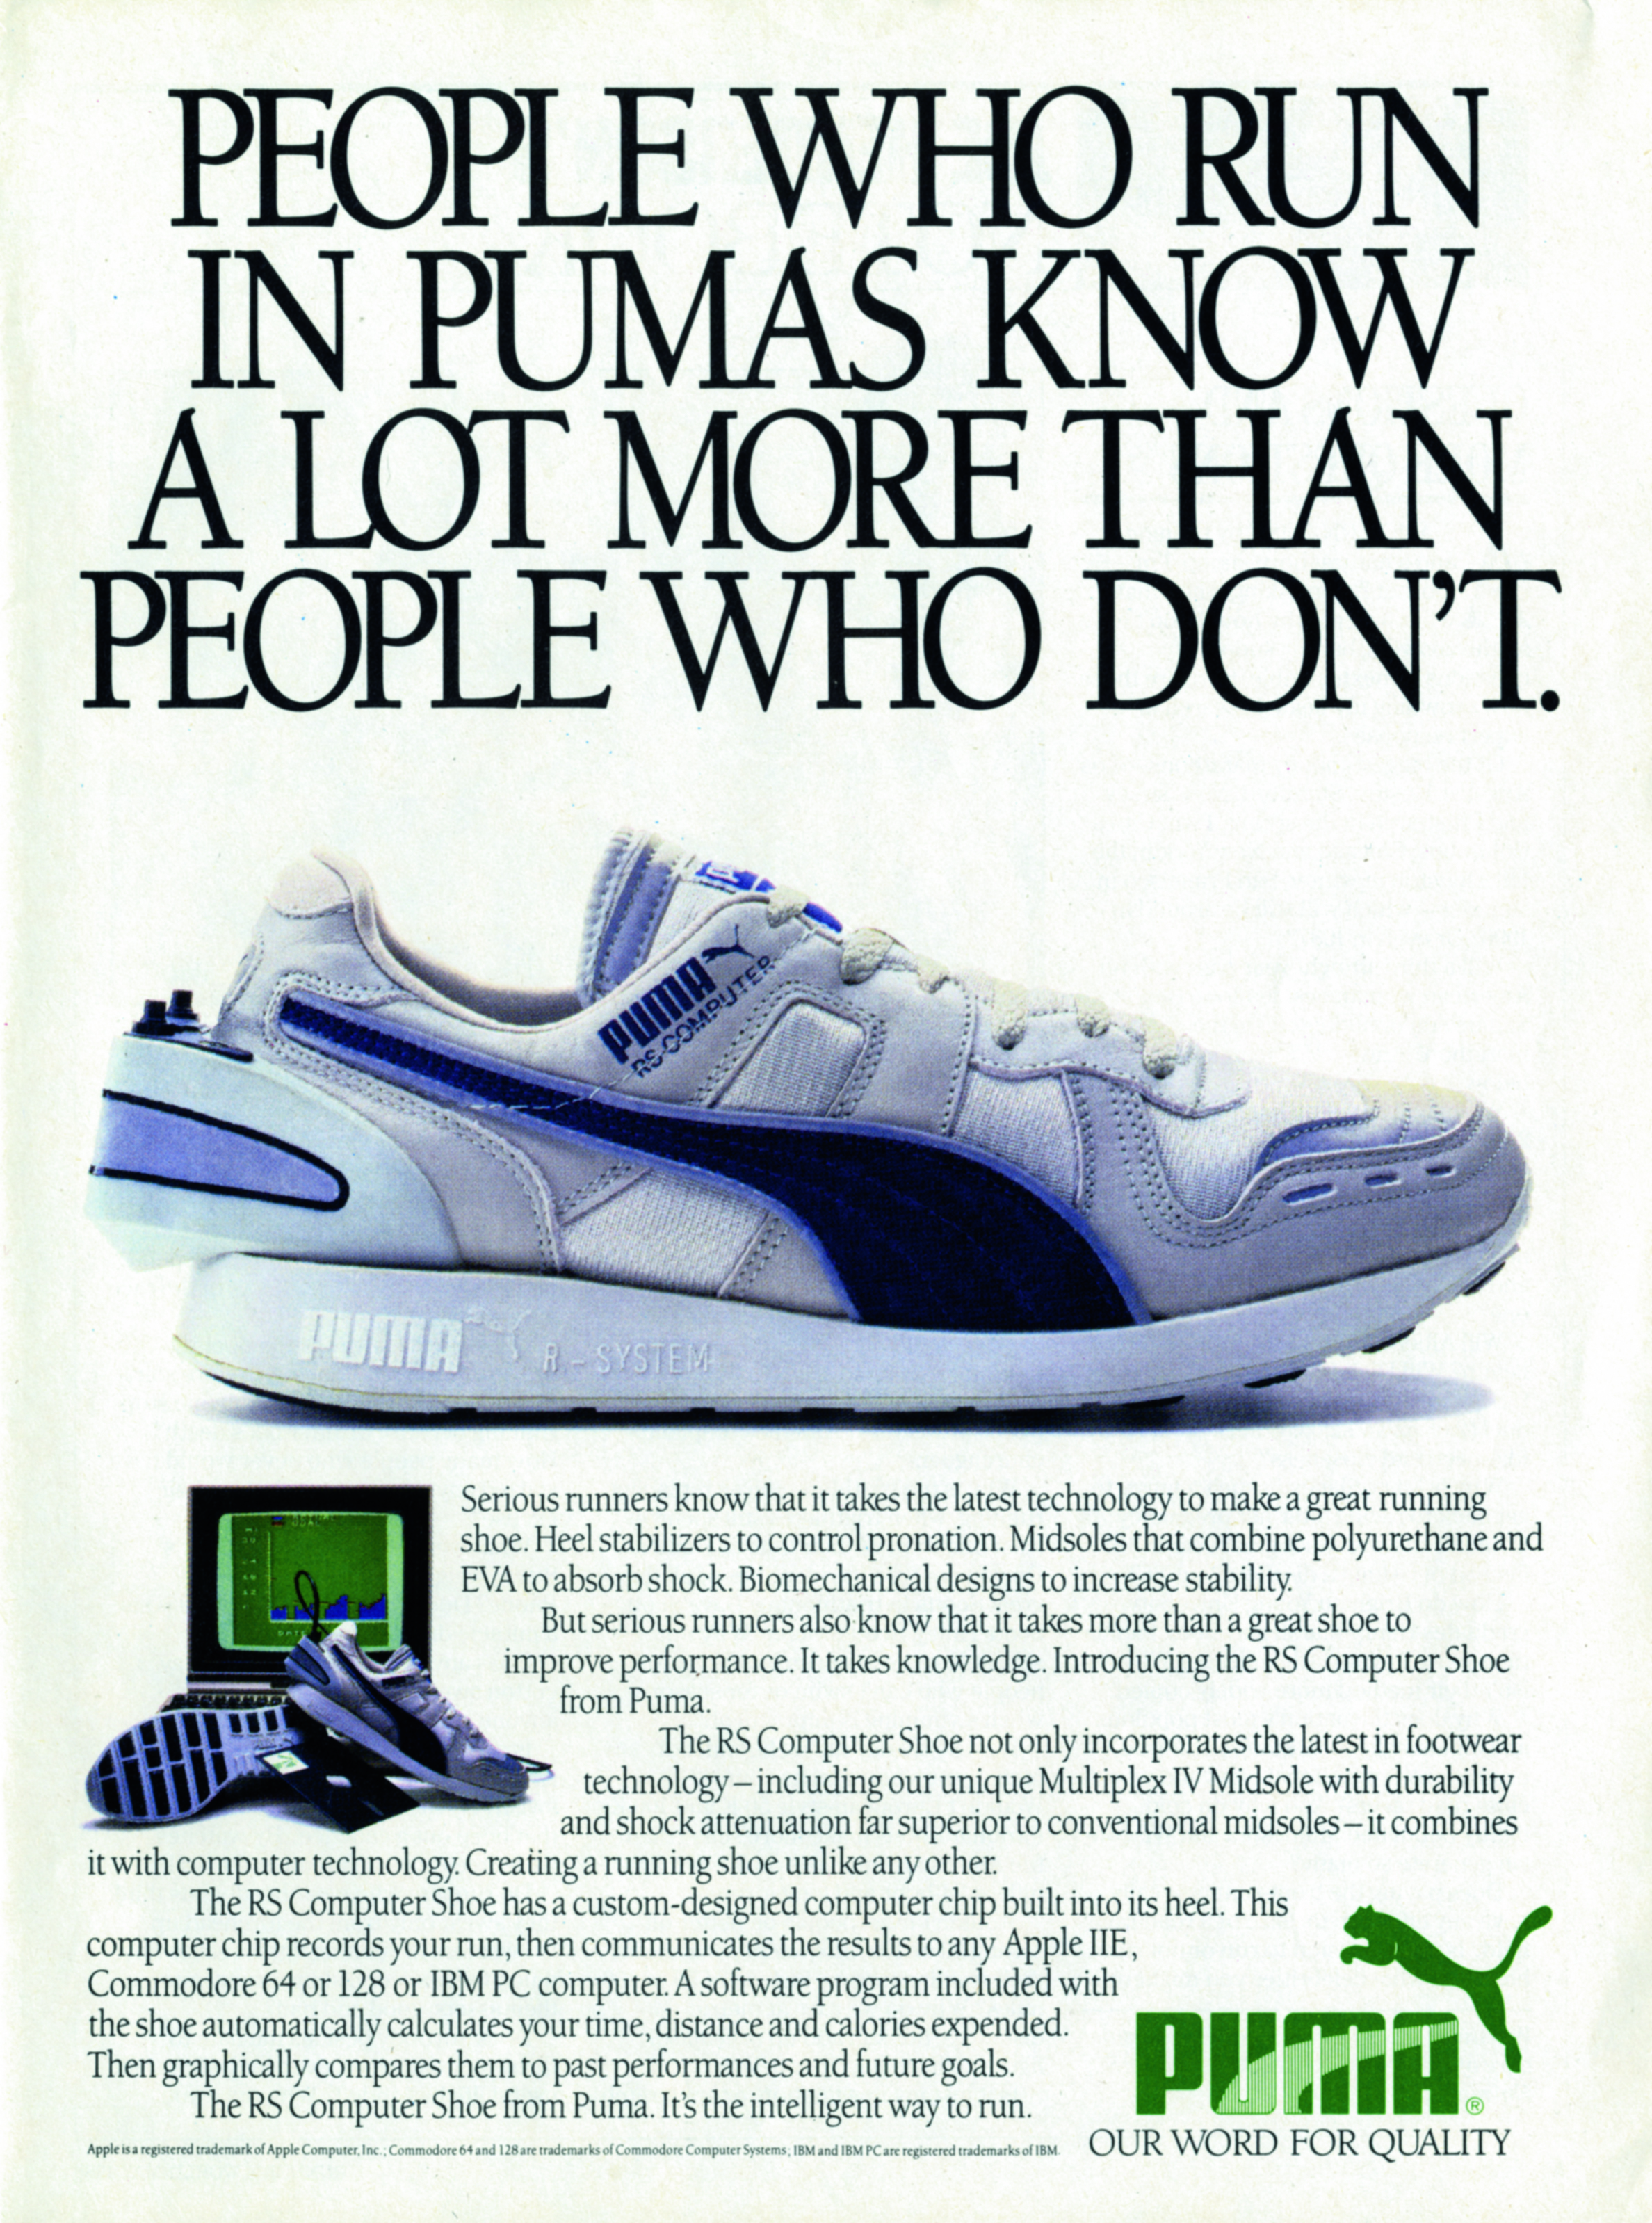 Puma RS Computer Shoe advert from 1986